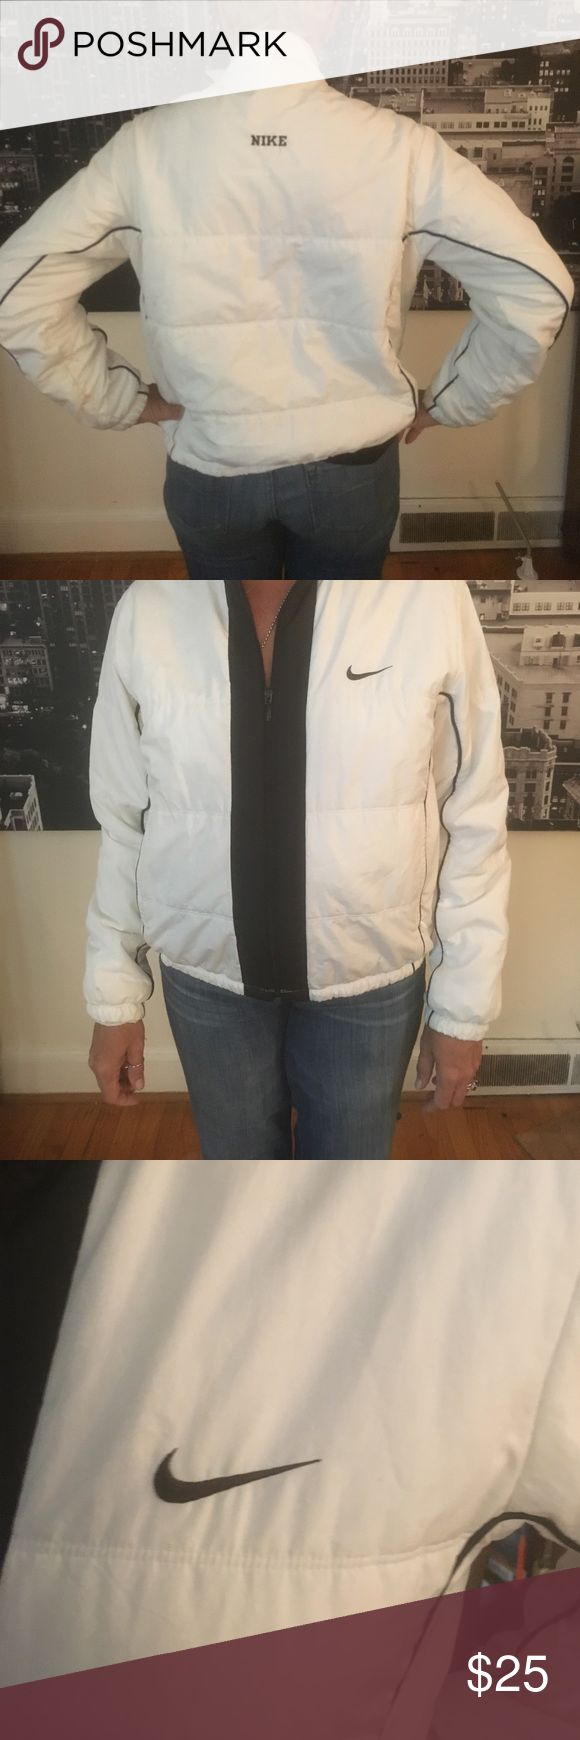 Unisex Nike Retro light jacket Nike lightweight zipped jacket perfect condition worn a few times has pocket on the inside ( great for men or women) Nike Jackets & Coats